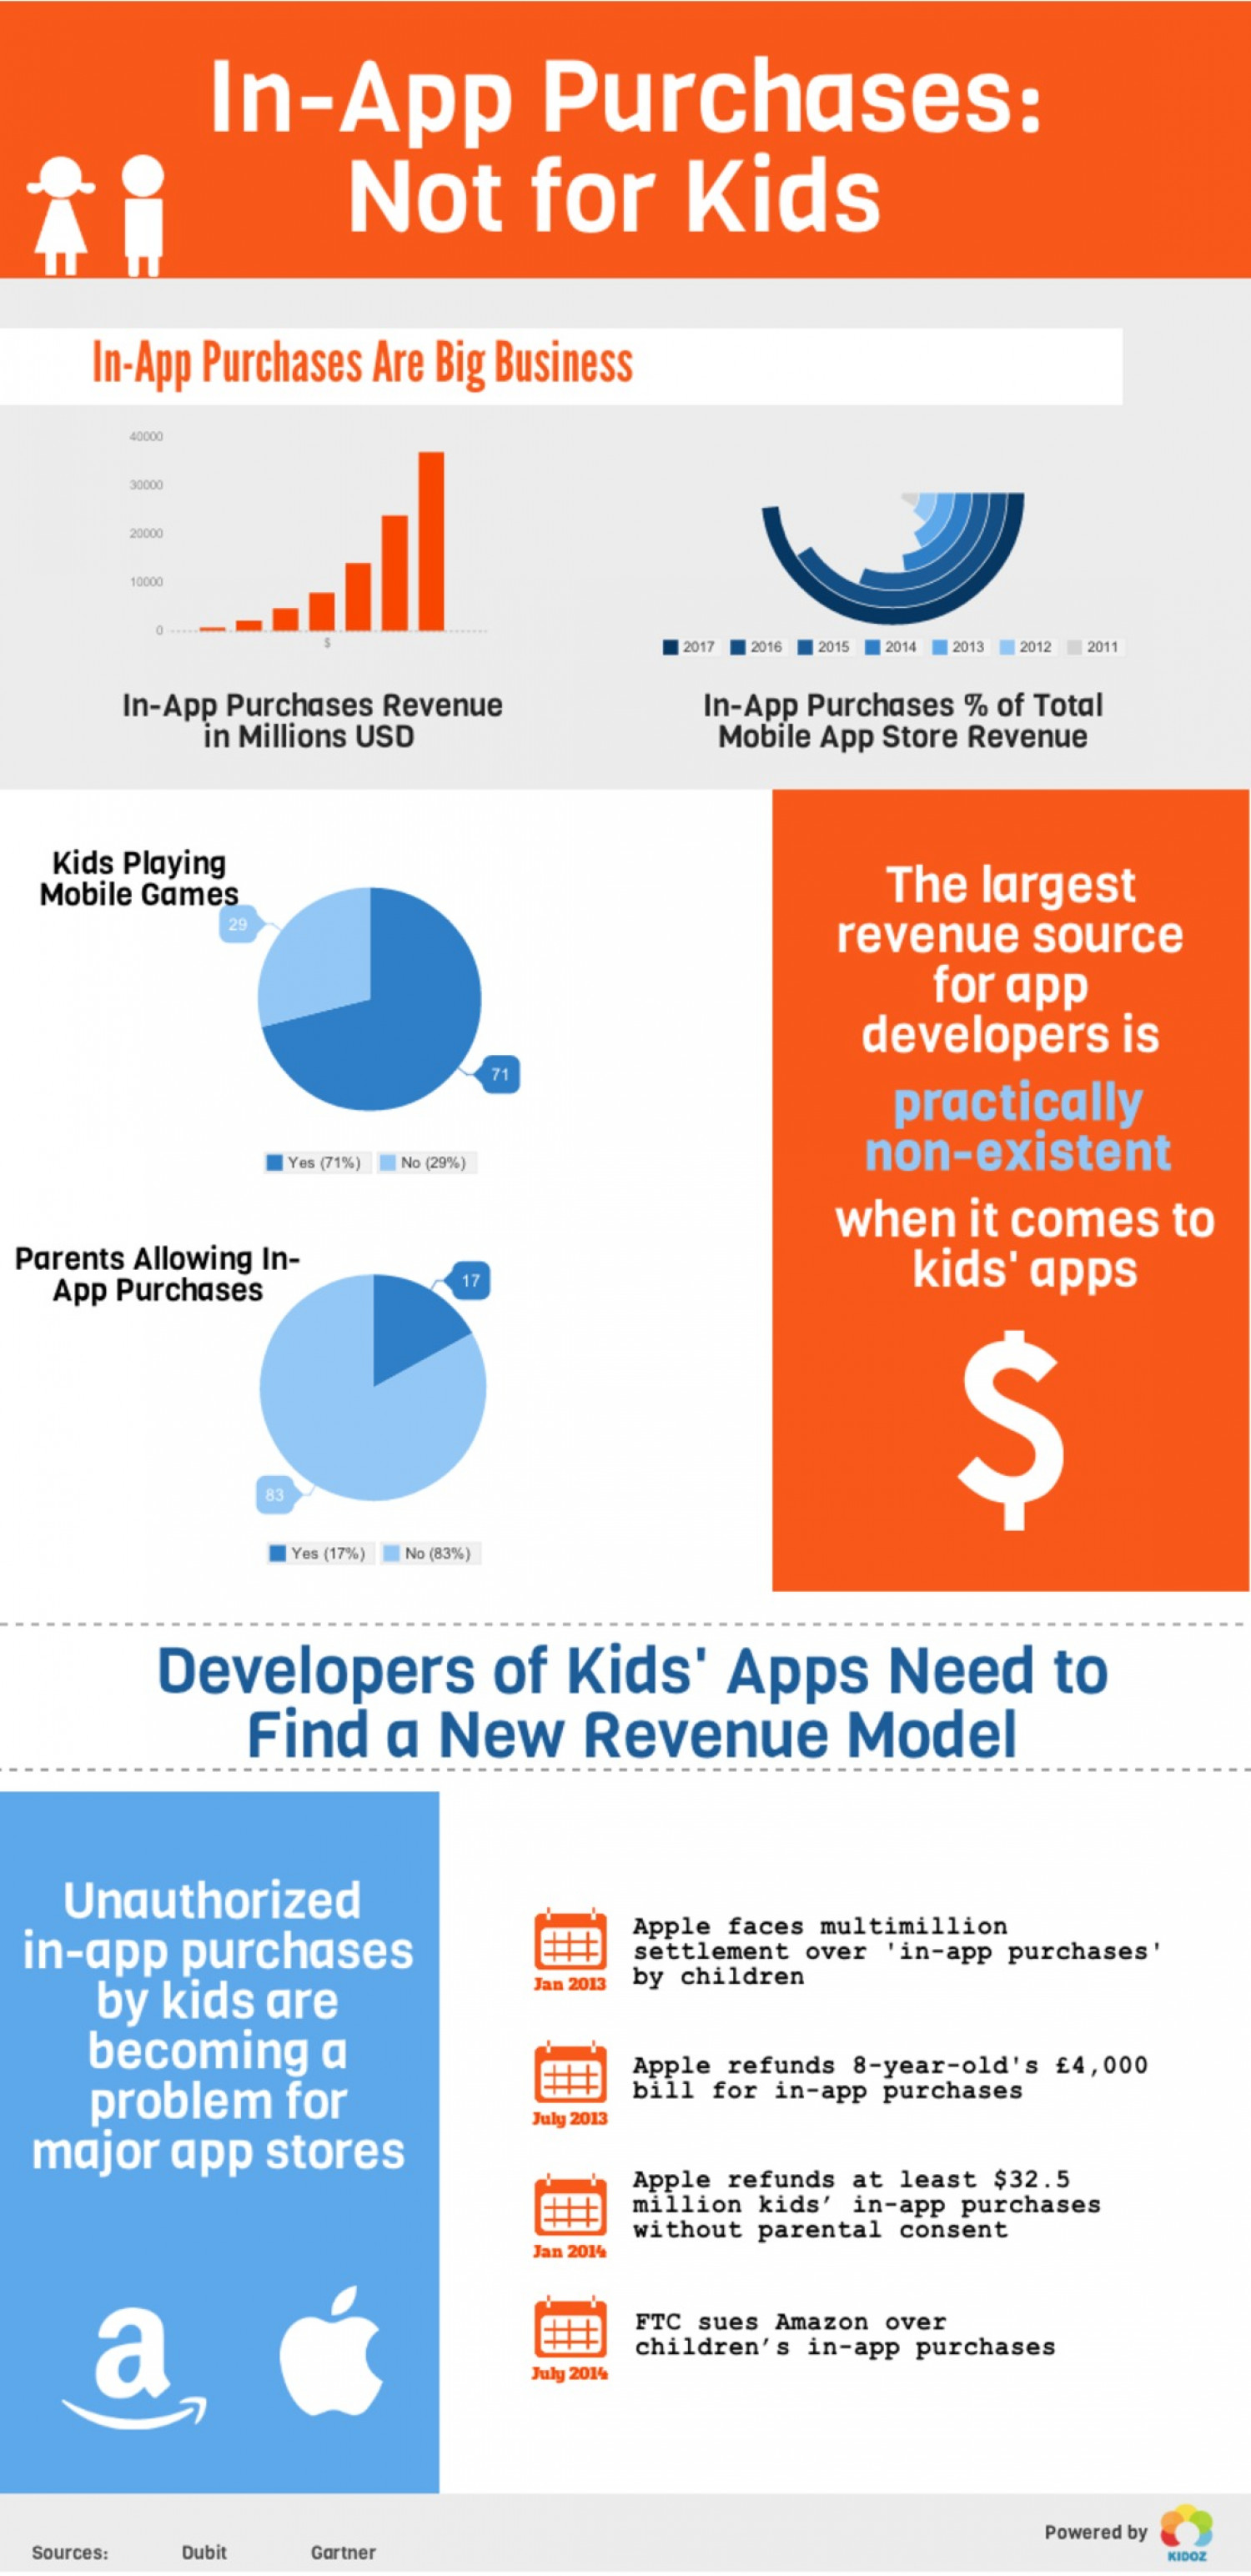 Developers of Kids' Apps Need To Find a New Revenue Model Infographic